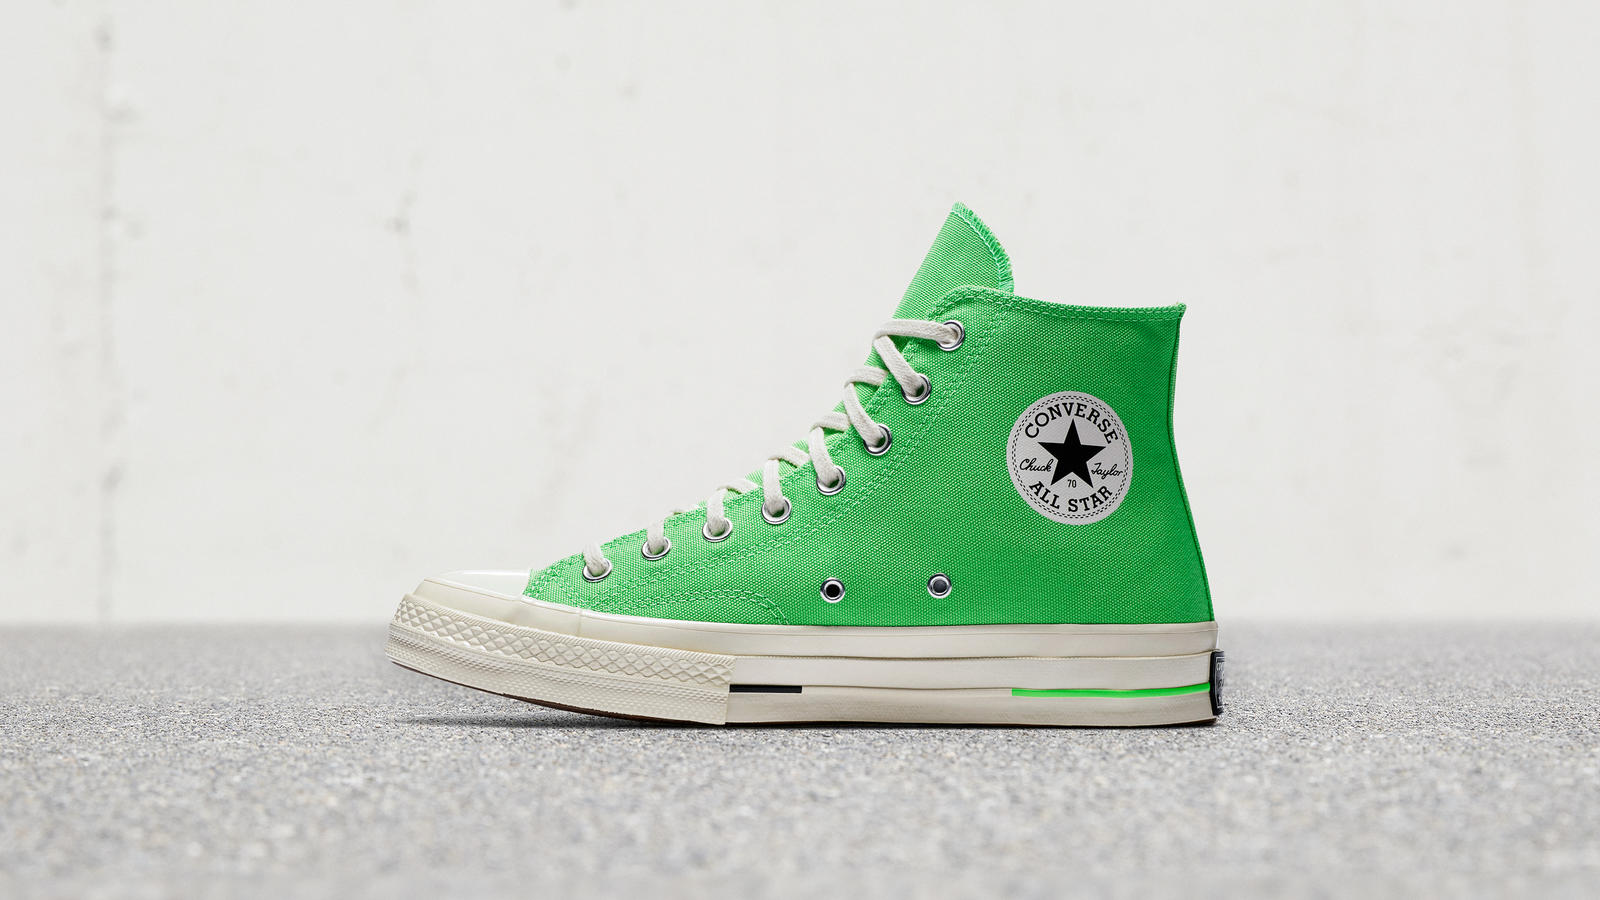 Converse chuck 70 bright canvas 04 hd 1600